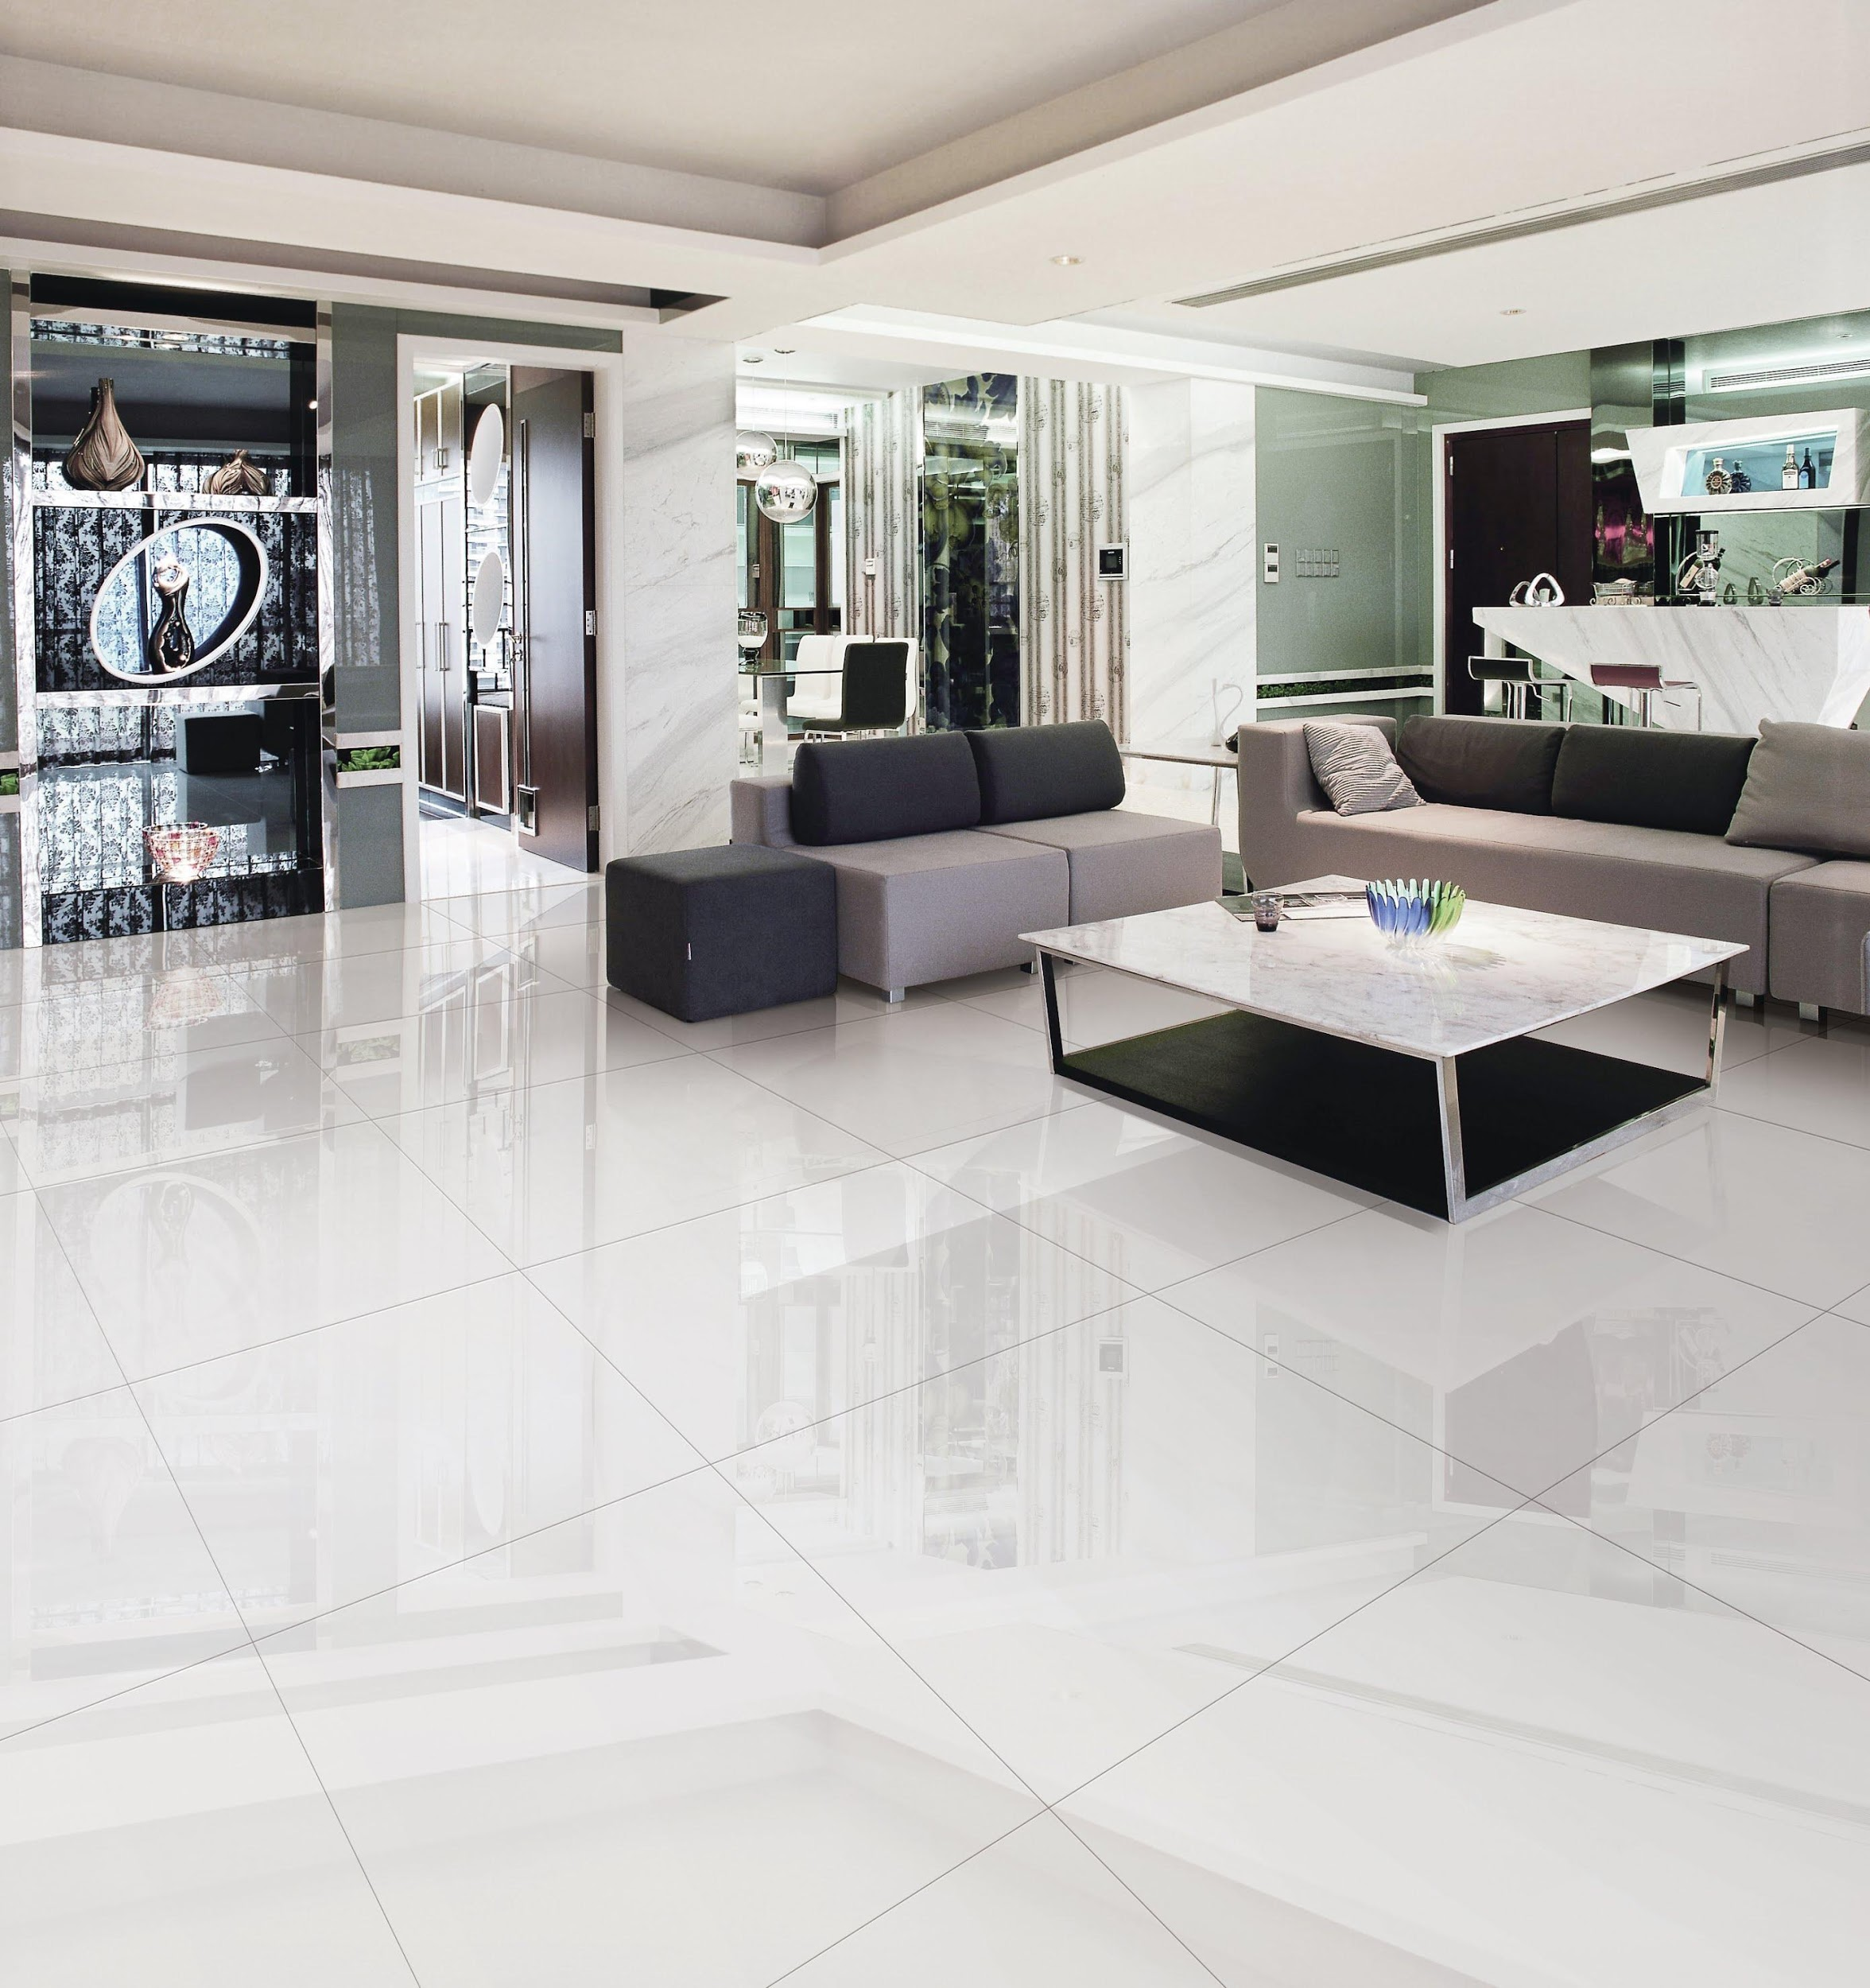 The Philippine Price Of Tiles For Your House Fc Floor Center Blog